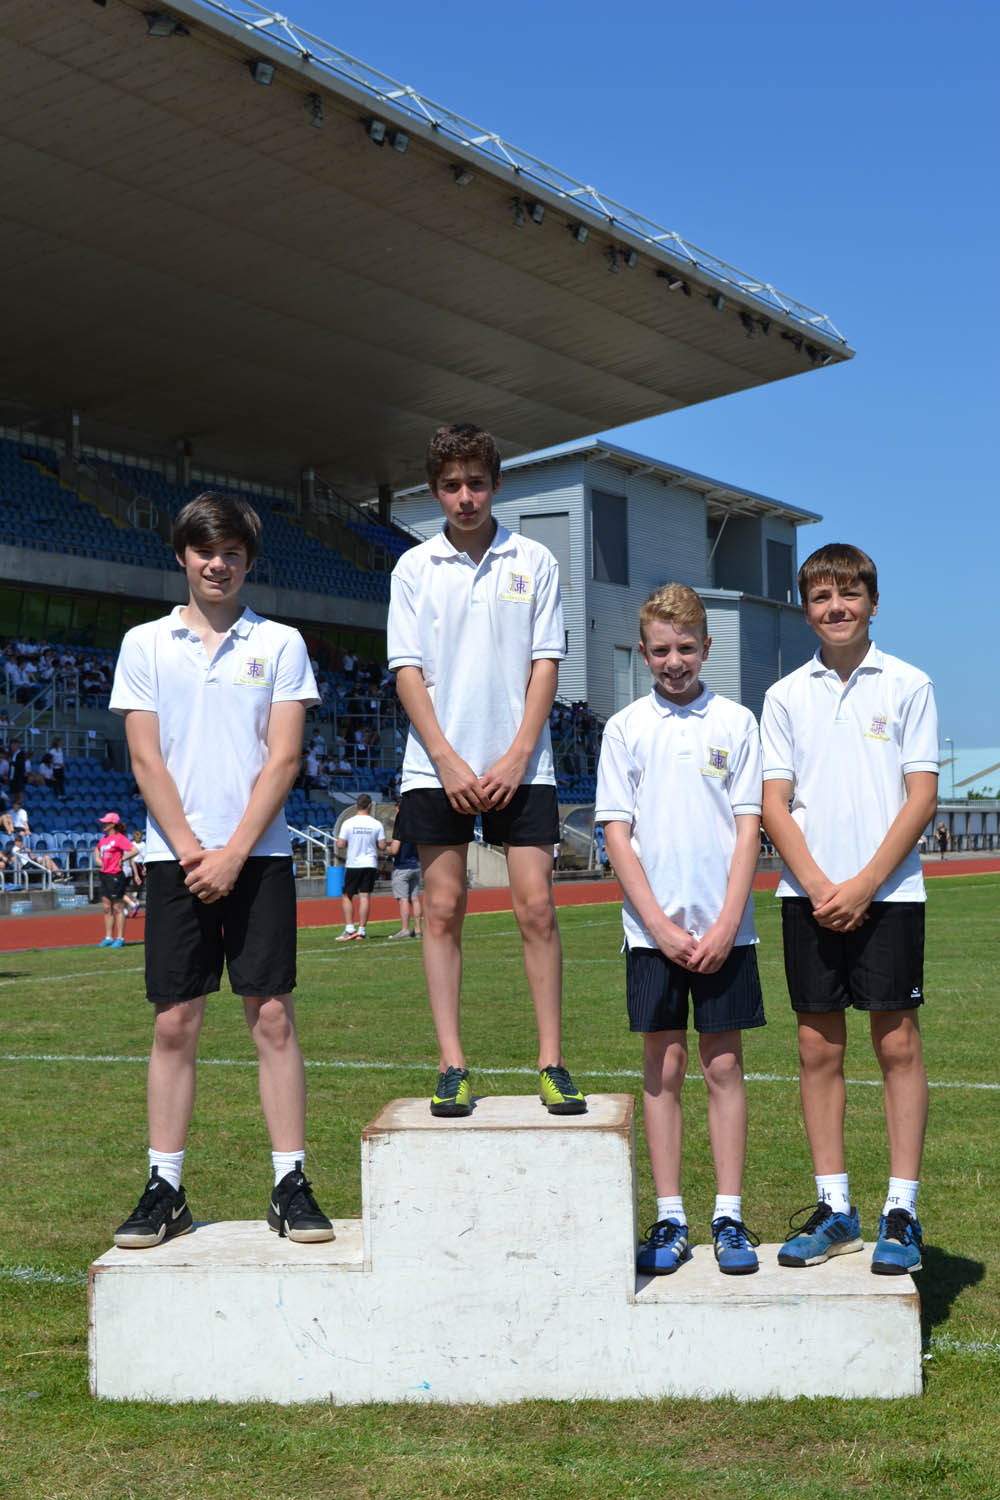 Year 9 Boys Long Jump